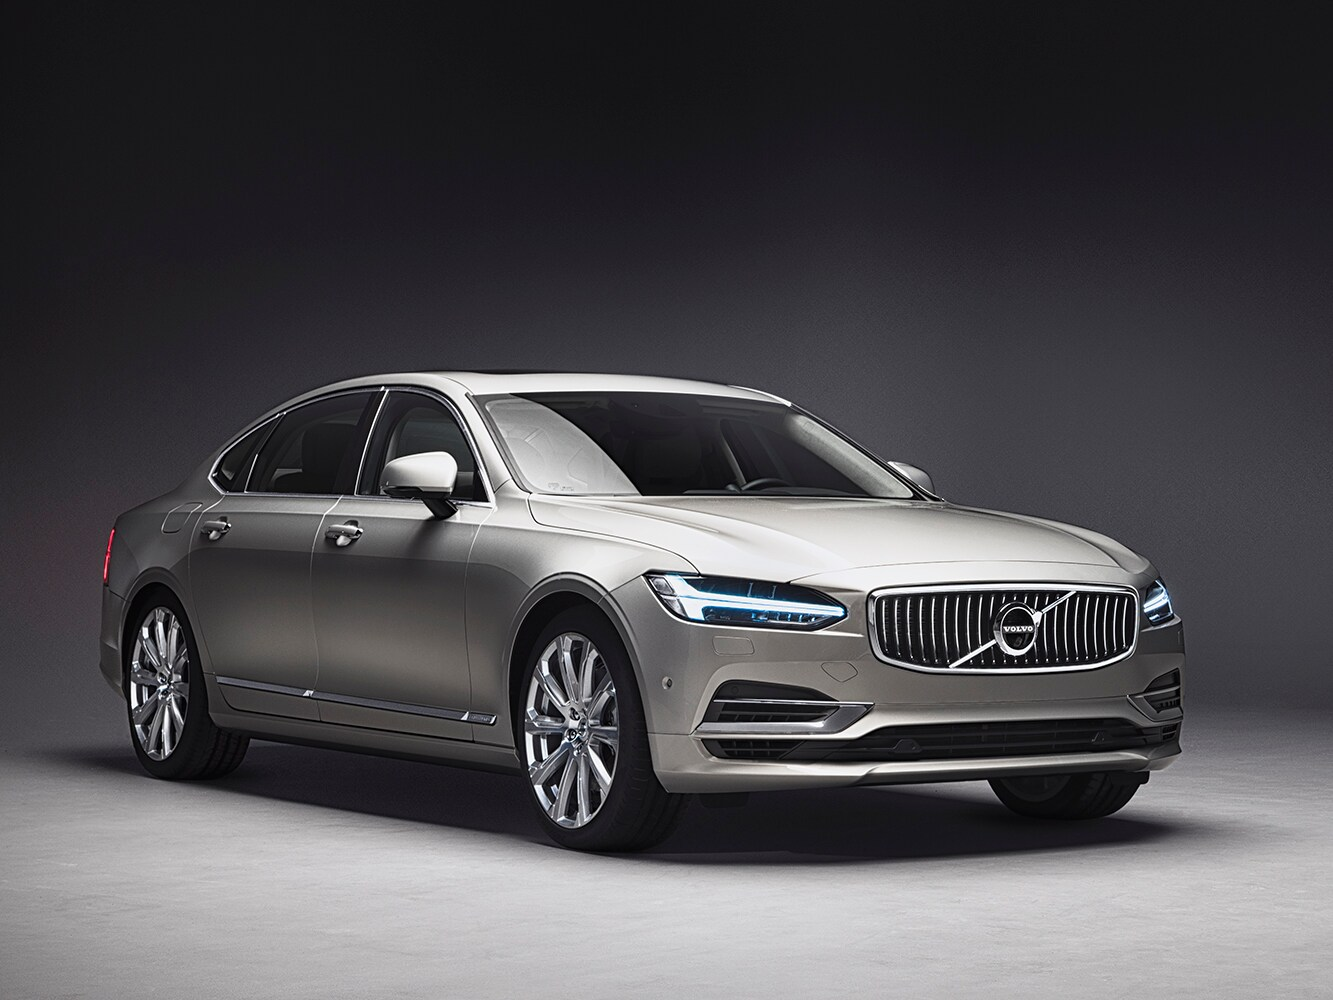 A front side view of the Volvo S90 luxury saloon